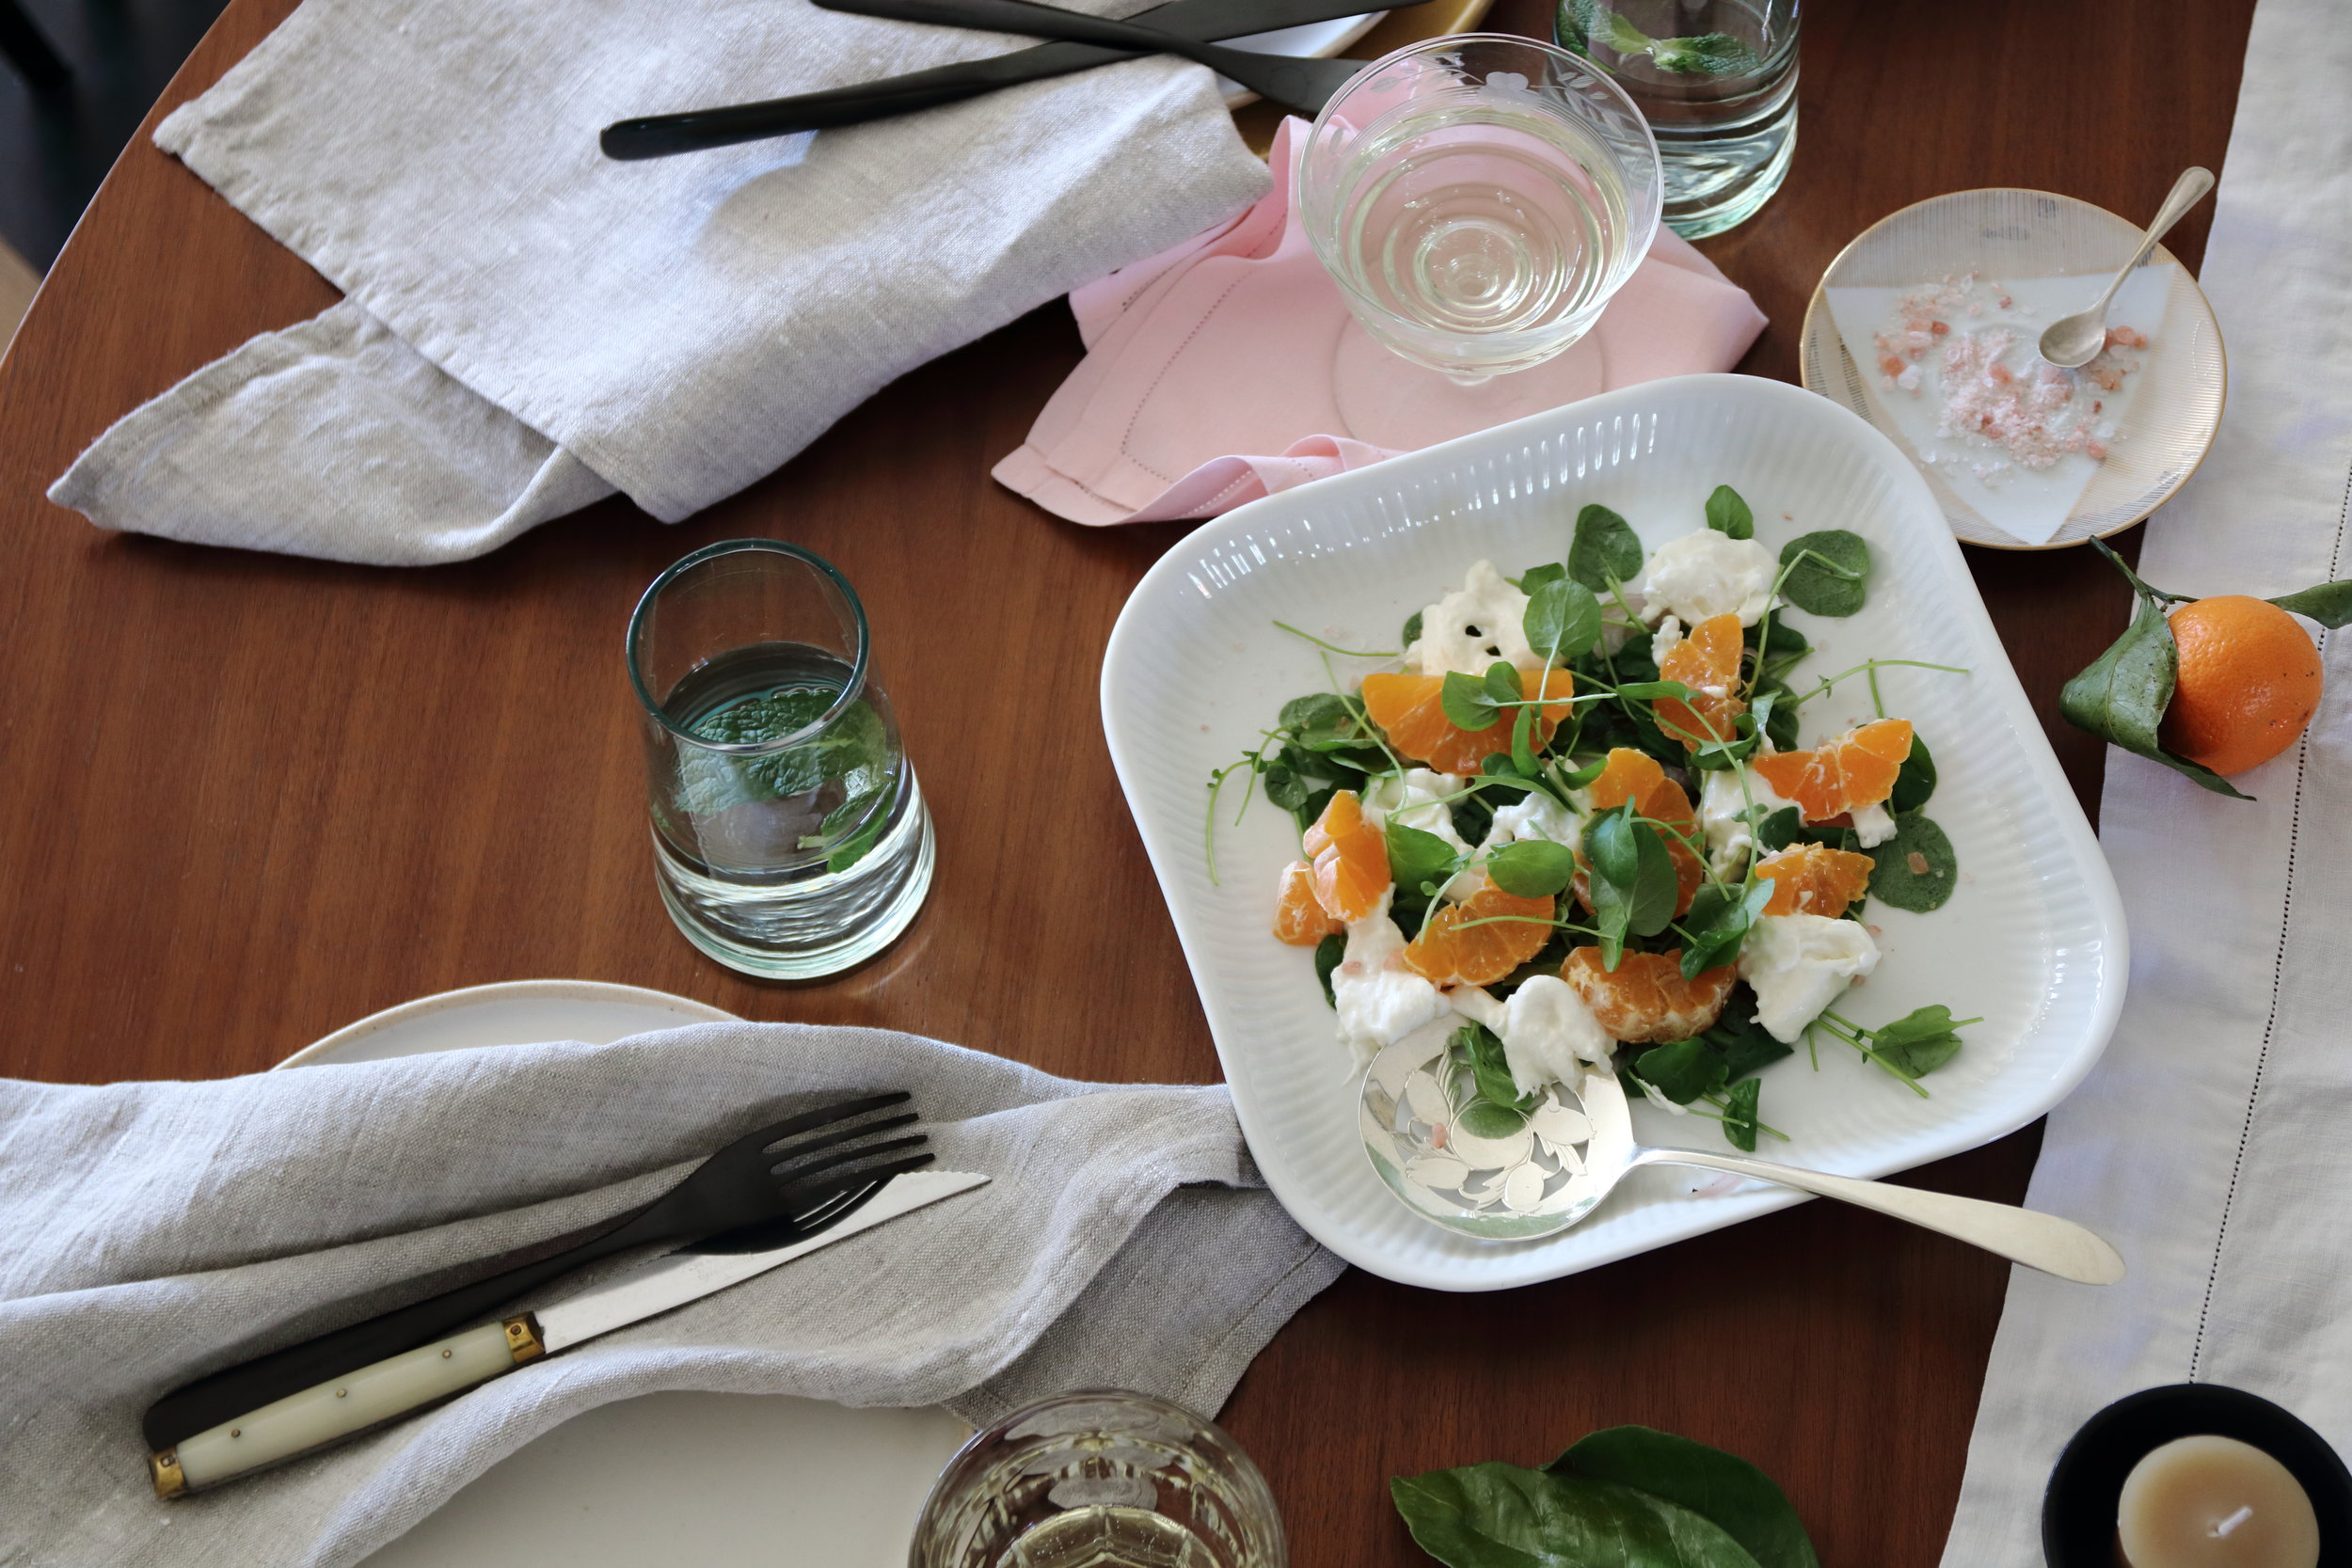 Burrata White Dish 1.JPG